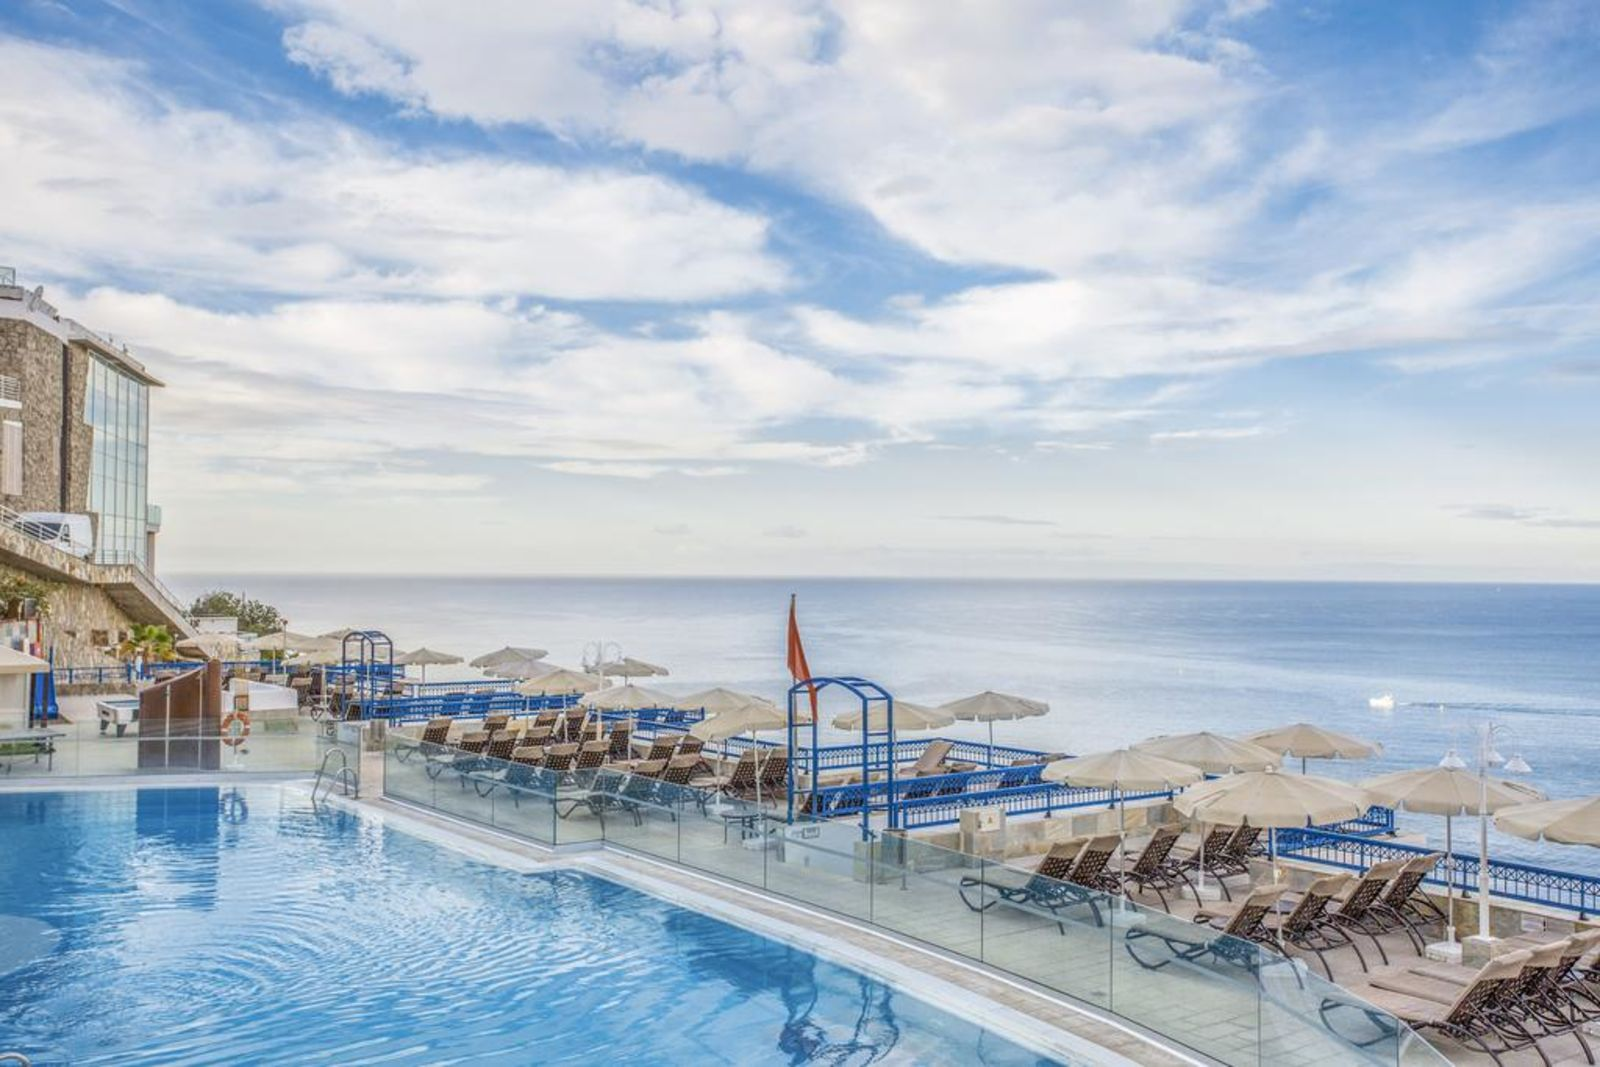 Impressions and Other Assets/Apartments at Cala Blanca by Diamond Resorts 1